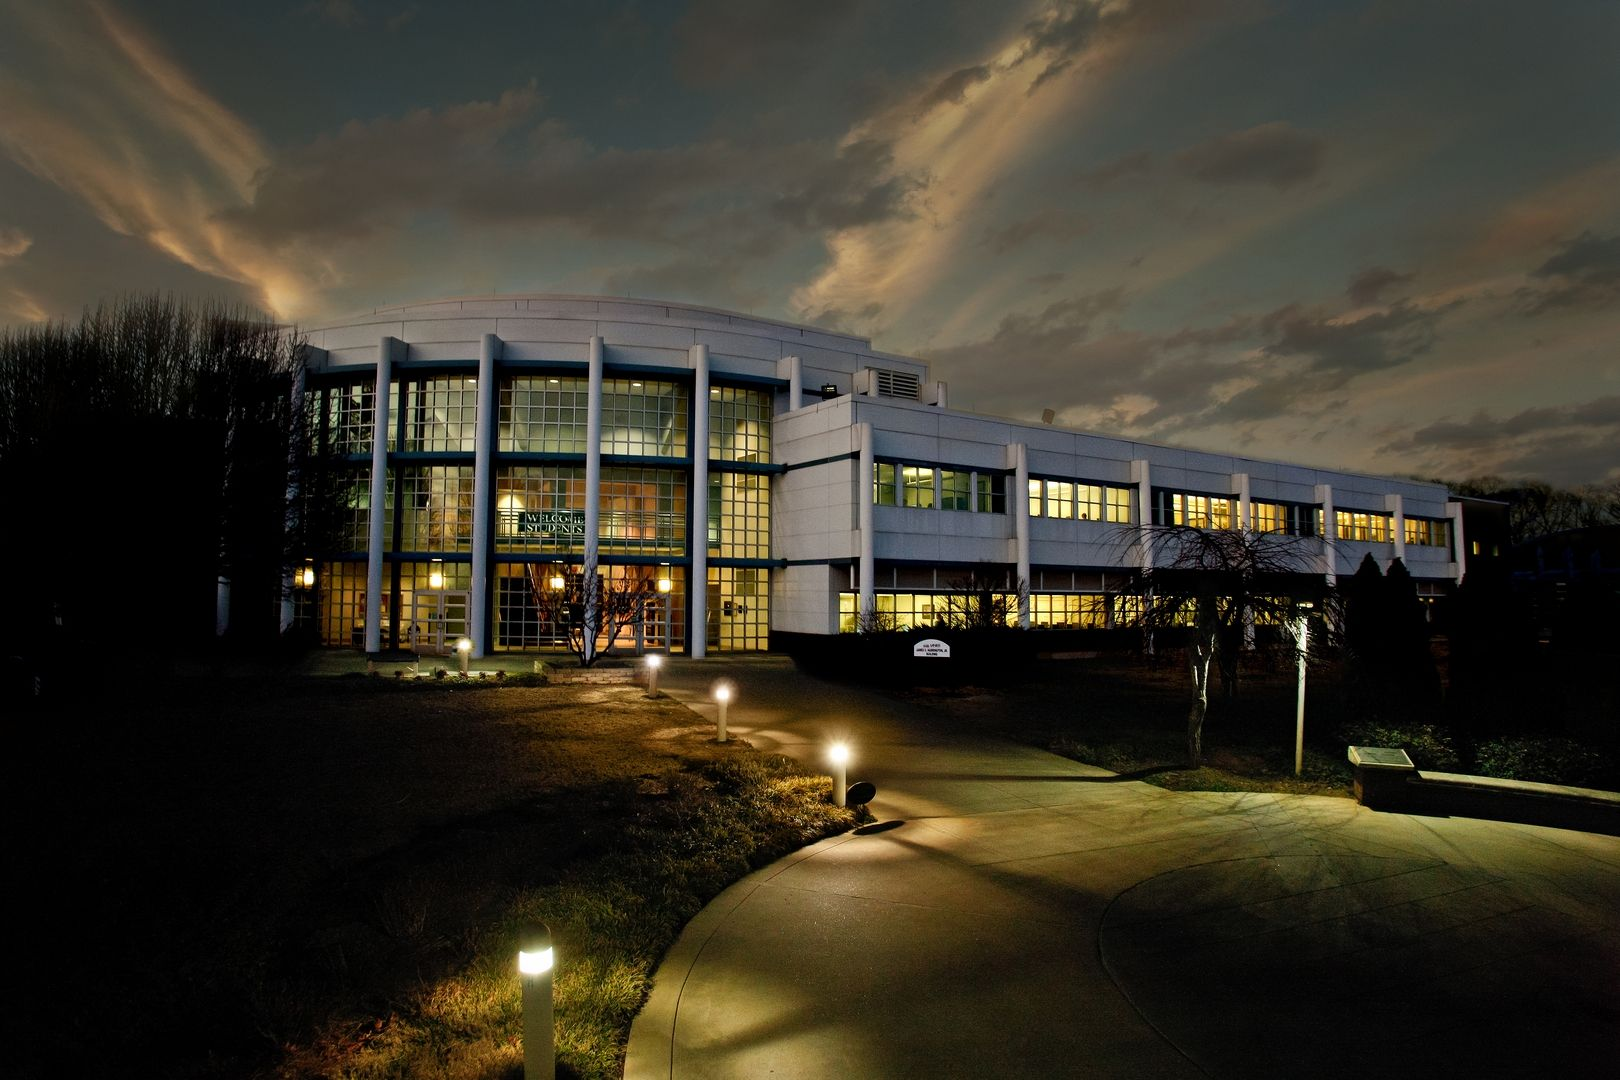 Lanier Tech's Forsyth Campus at night. Campus, House